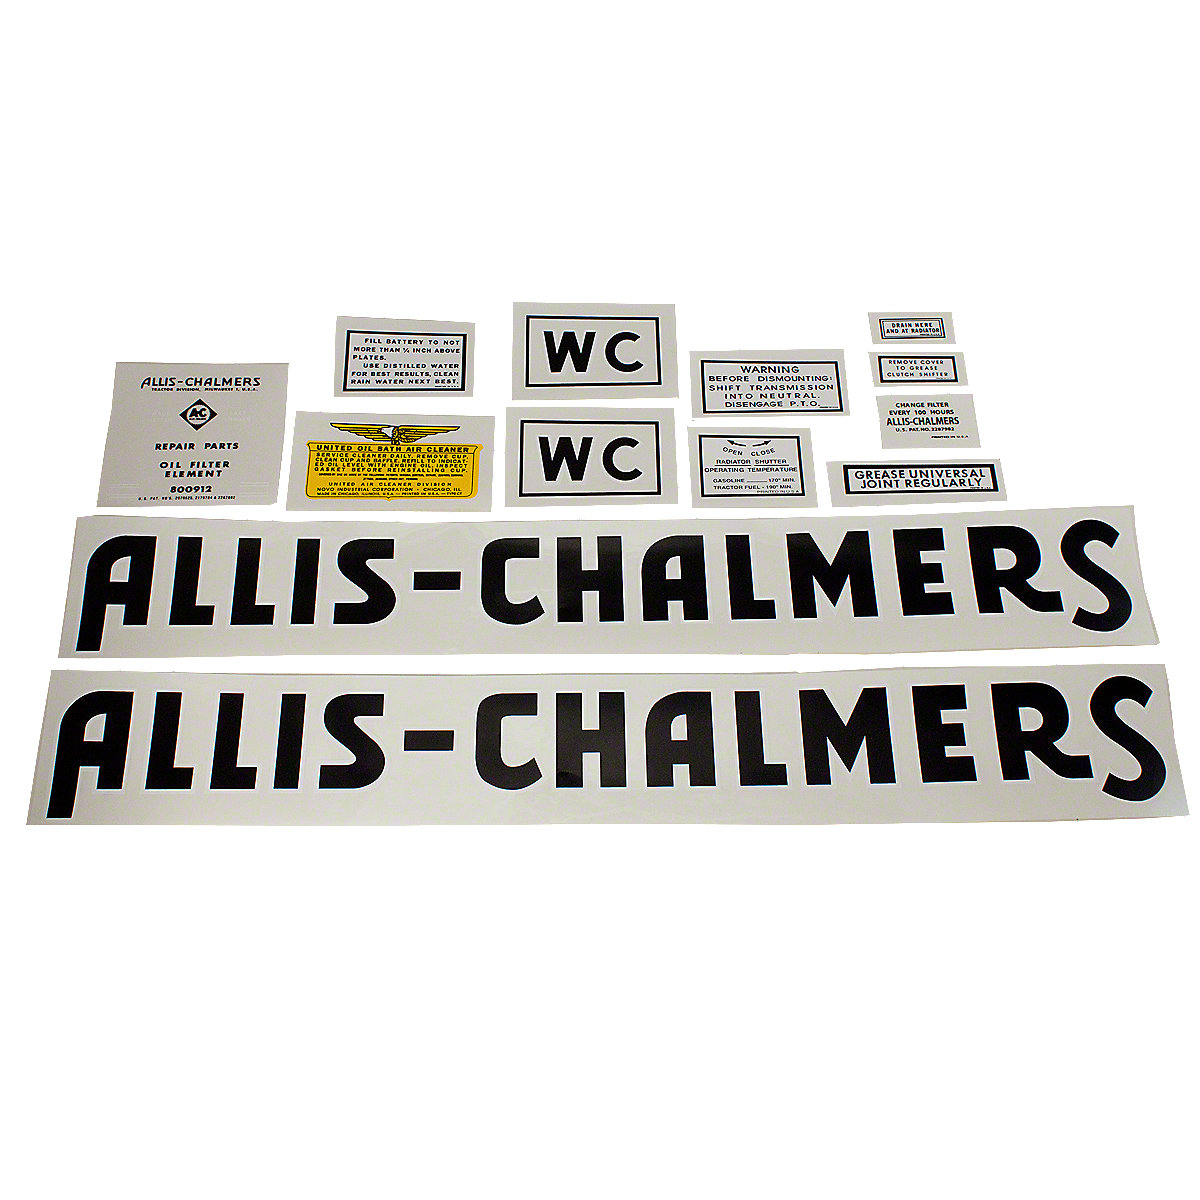 Decal Set For Allis Chalmers: WC 1941 to 1948.